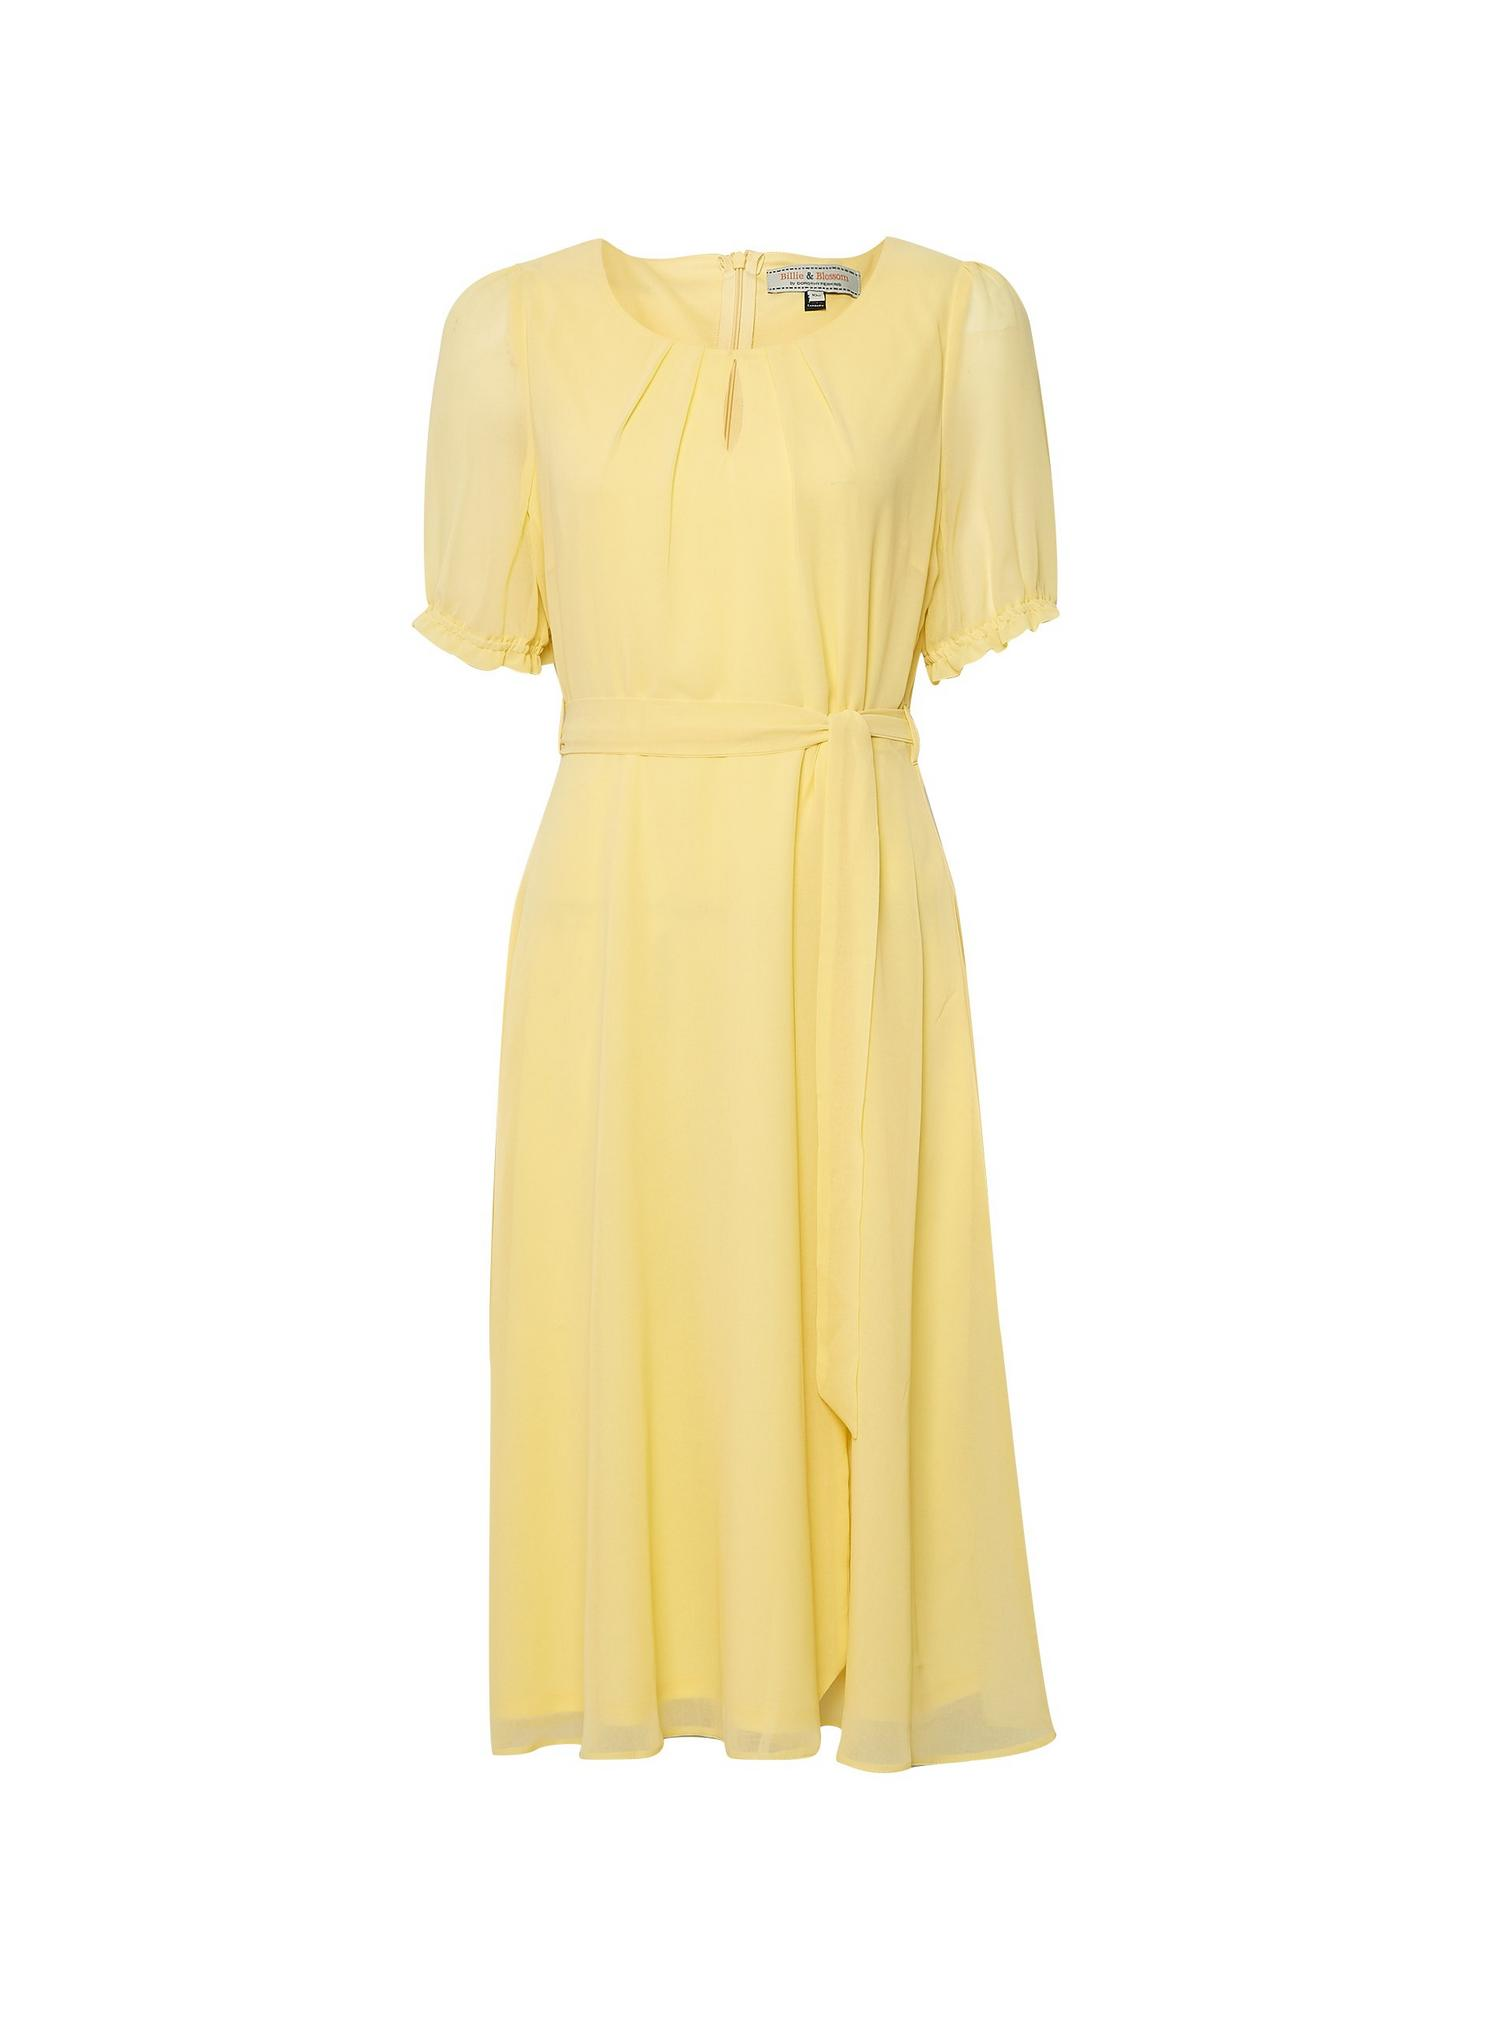 174 Billie Lemon Key Hole Puff Midi Dress image number 2